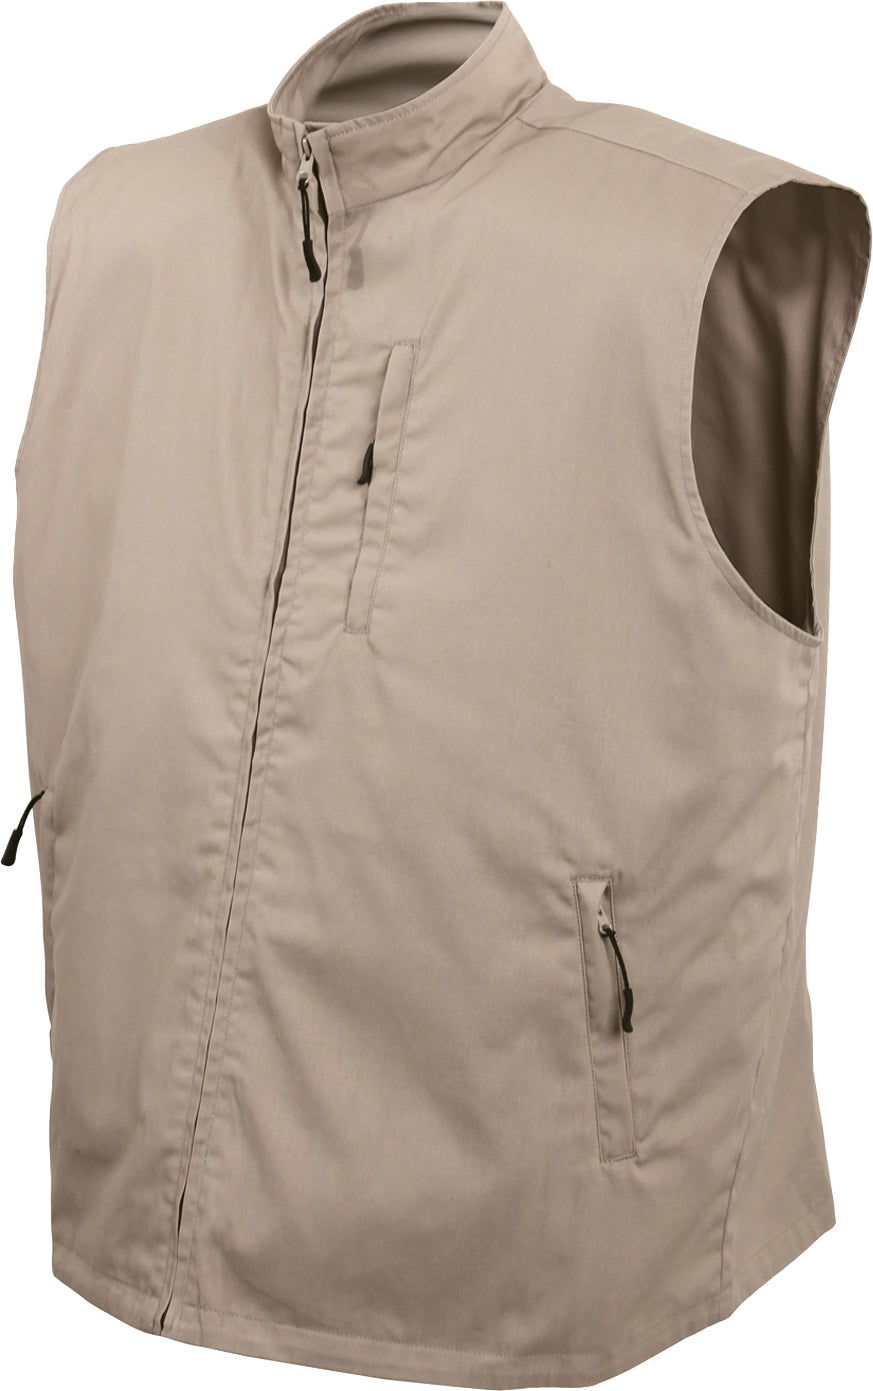 Tactical Concealed Carry Undercover Travel Vest